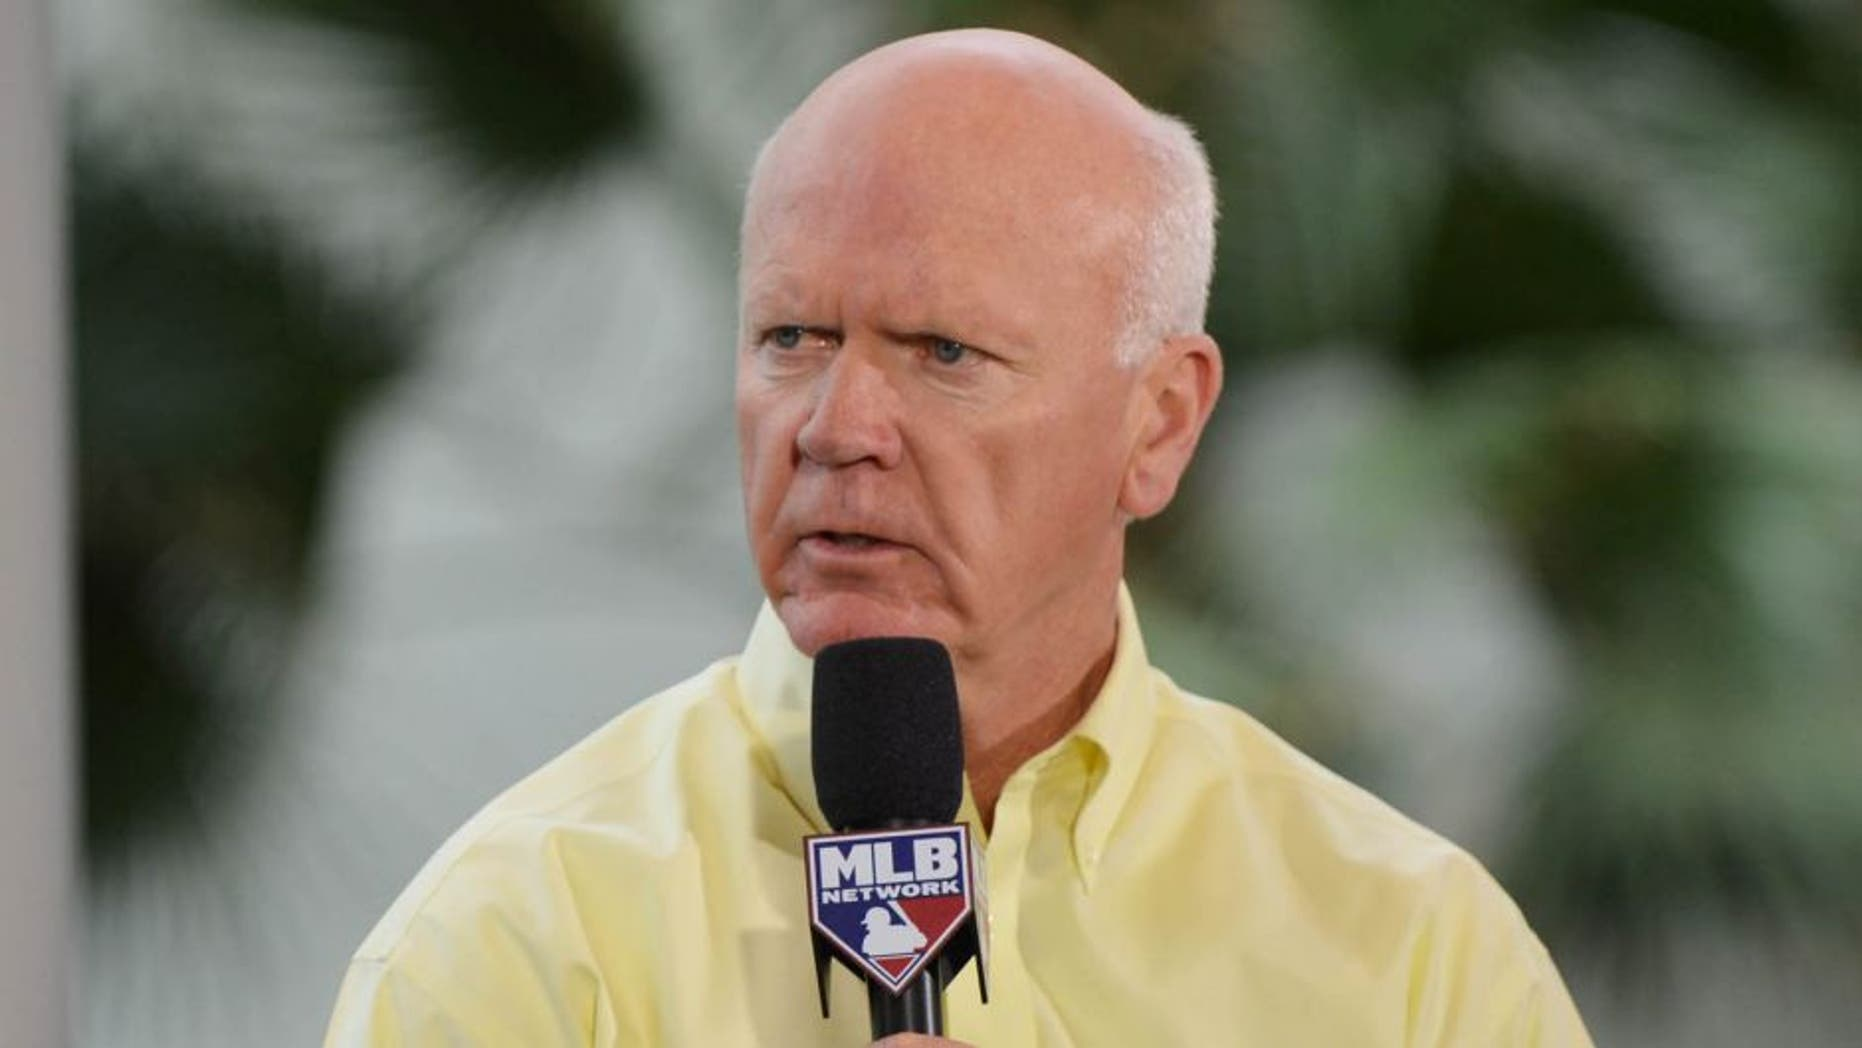 Dec 6, 2012; Nashville, TN, USA; Minnesota Twins general manager Terry Ryan is interviewed on the MLB Network during the Major League Baseball winter meetings at the Gaylord Opryland Hotel. Mandatory credit: Don McPeak-USA TODAY Sports